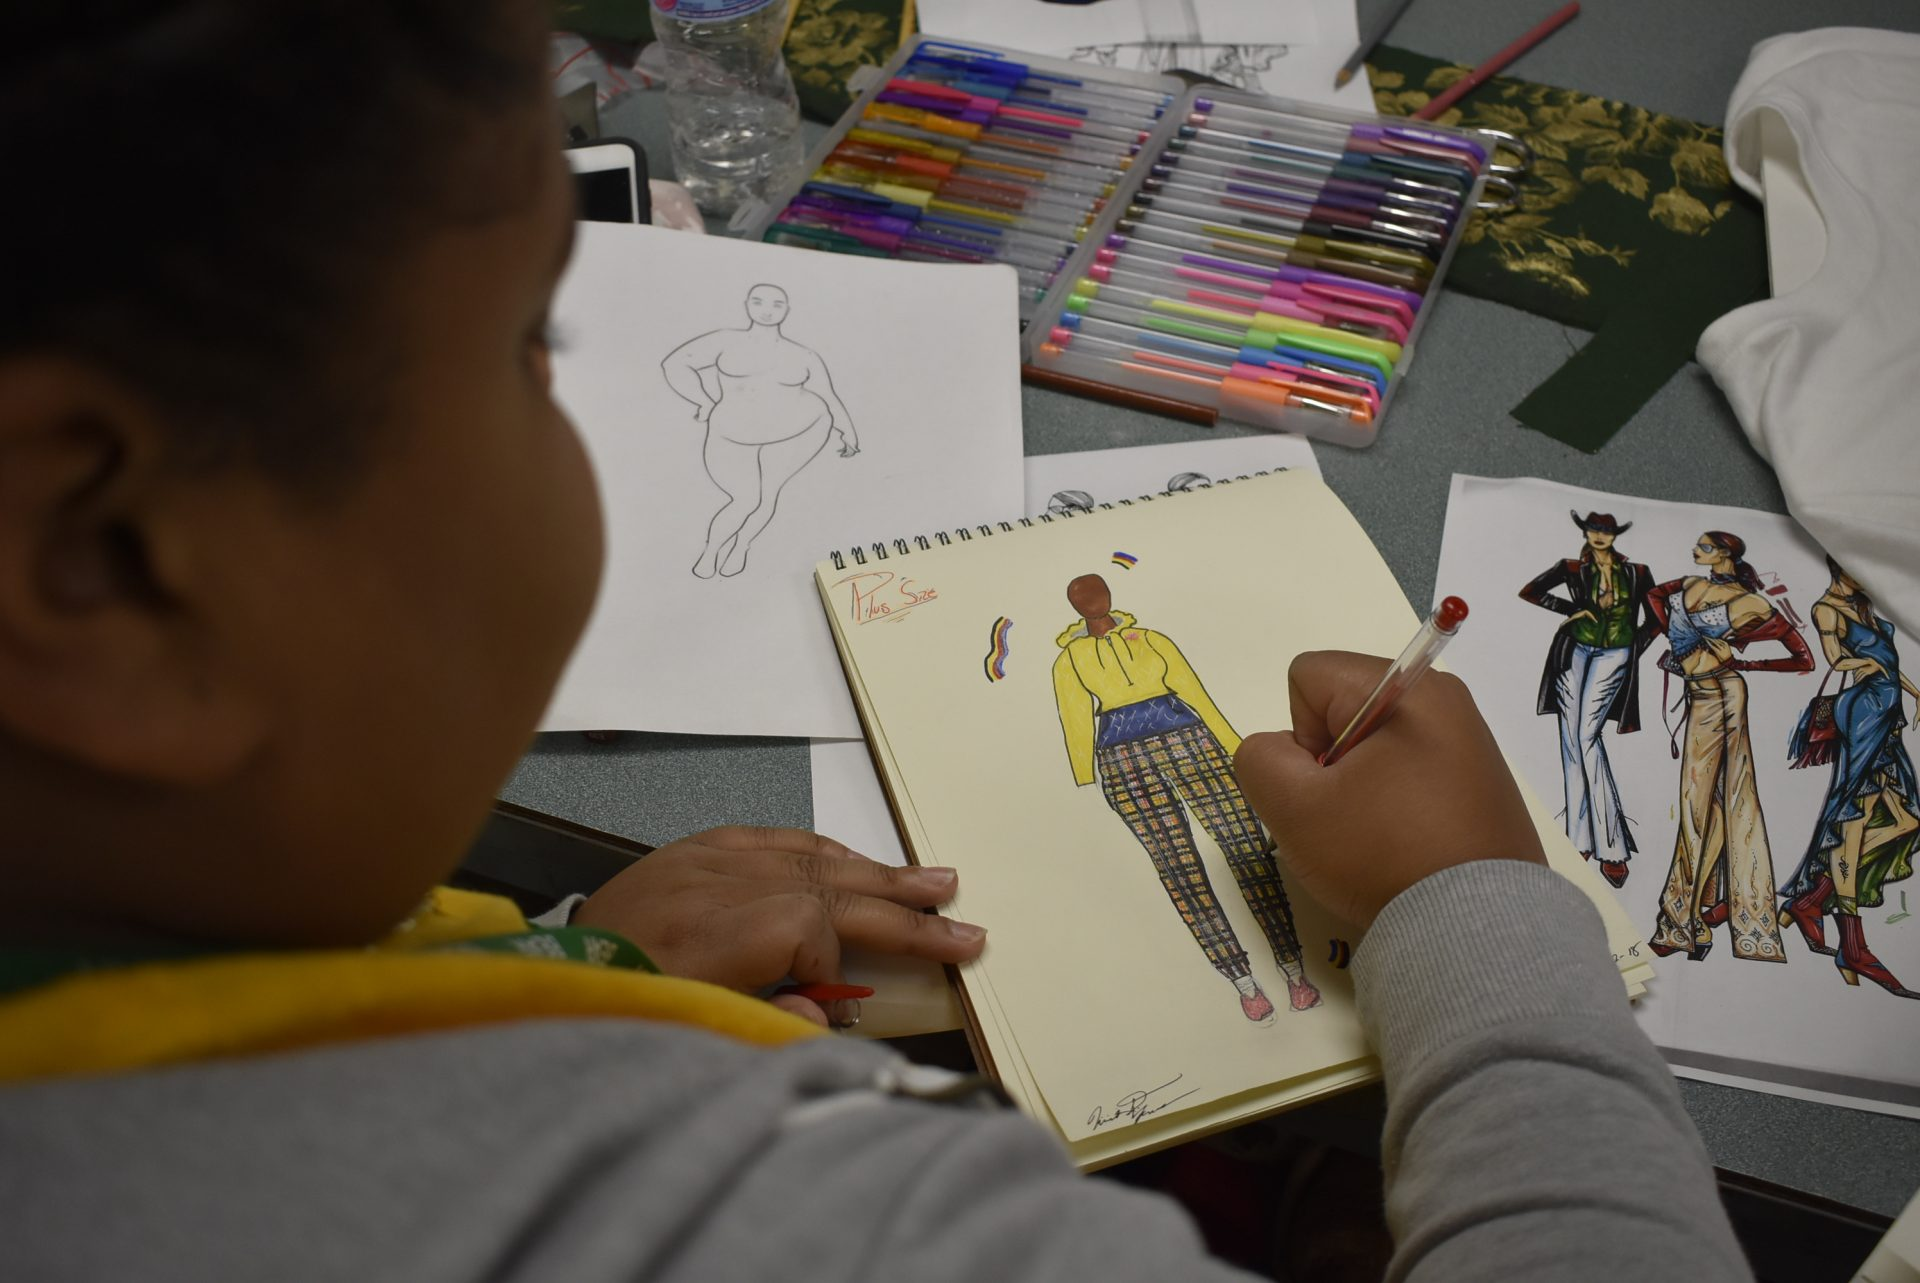 Fashion Design student drawing an outfit